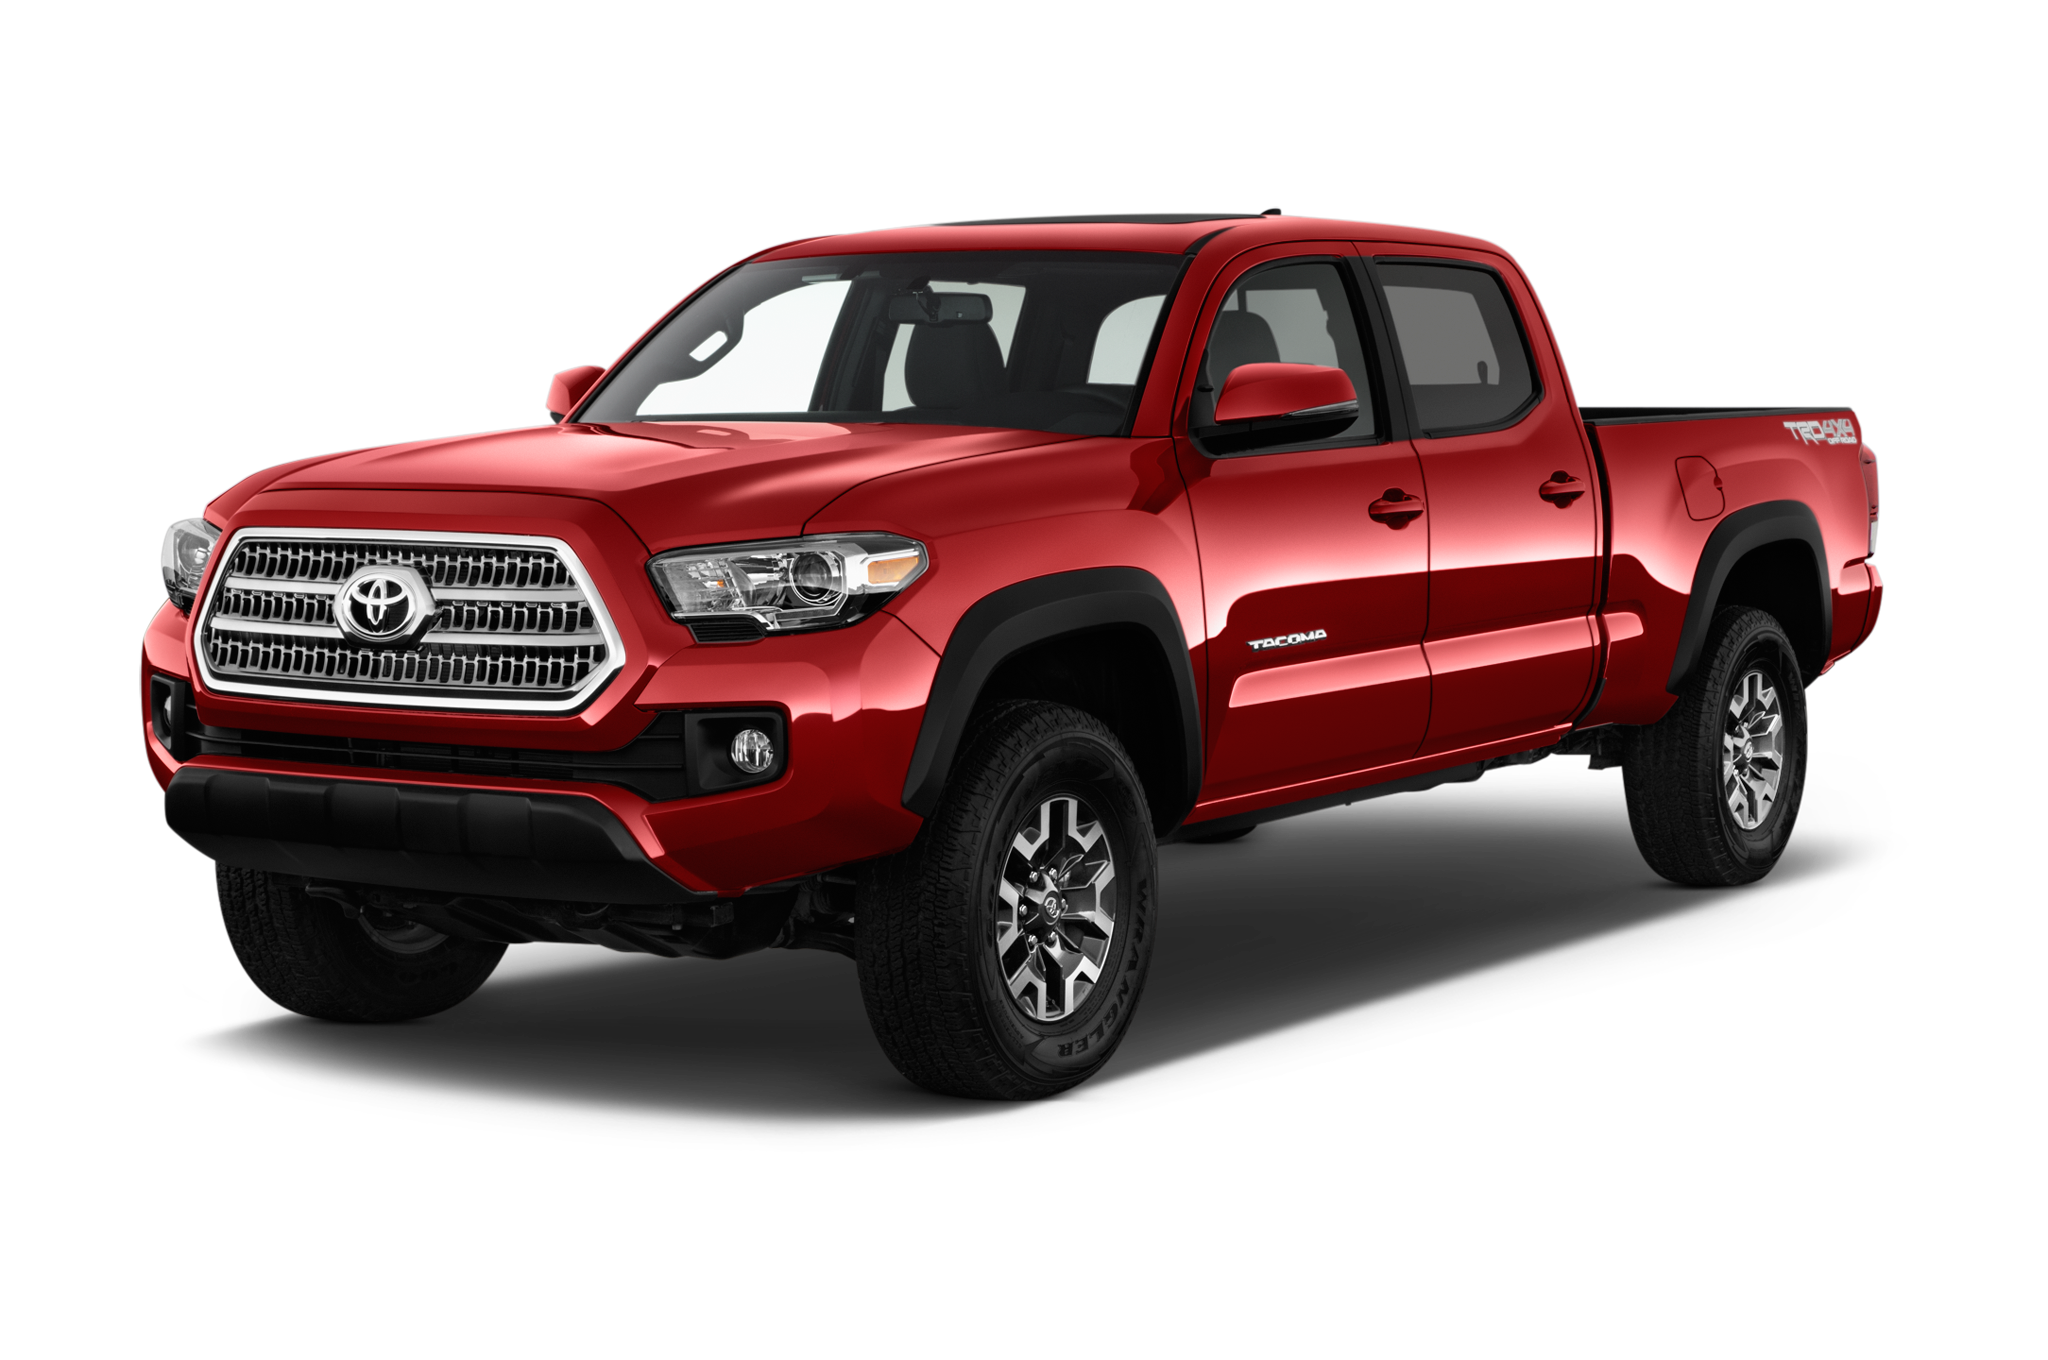 2017 toyota tacoma trd off road double cab 4x2 v6 auto sb overview msn autos. Black Bedroom Furniture Sets. Home Design Ideas